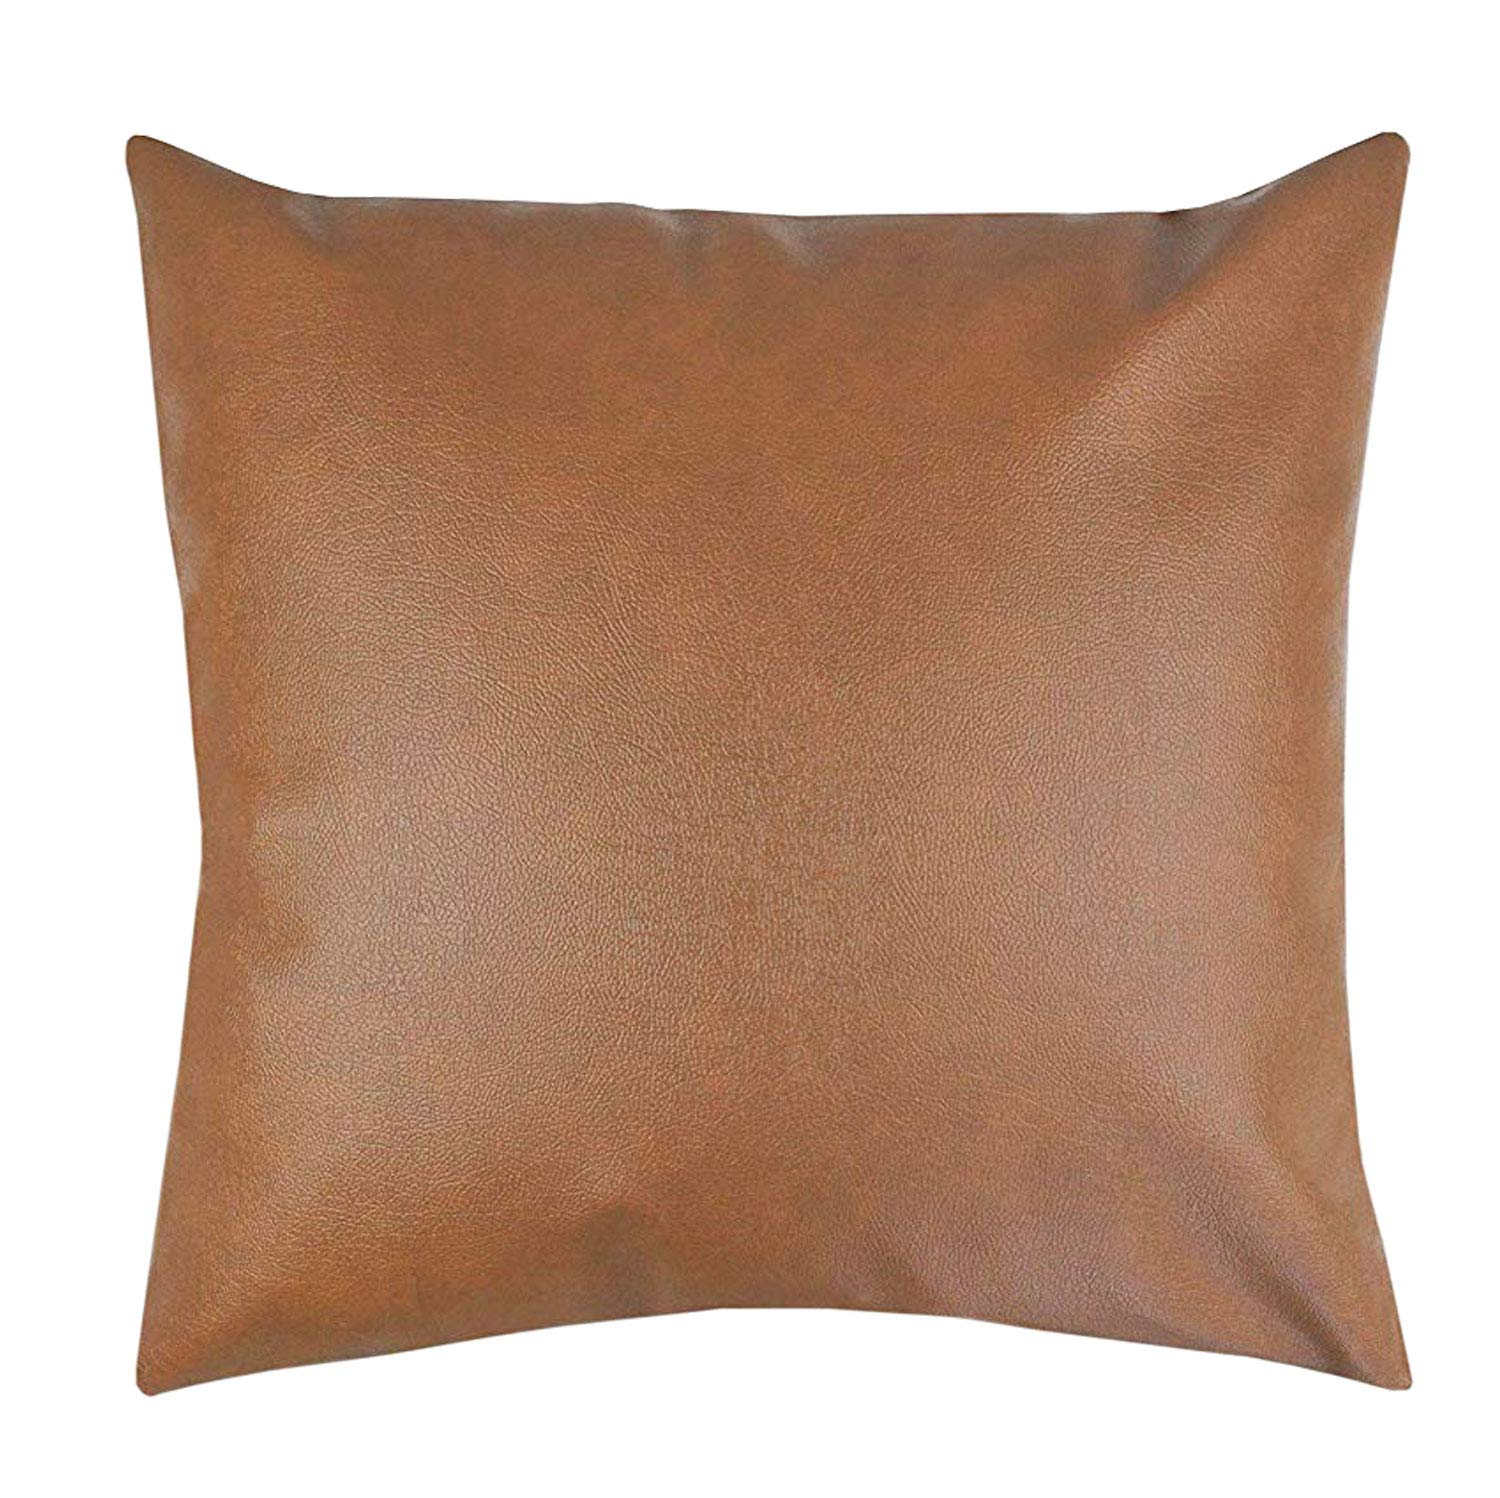 Two Queens Lane Faux Leather Pillowcase Throw Pillow Covers - Modern Boho Chic Brown Faux Leather Decorative Throw Pillows Cases Only for Couch Bed Home Decor   18x18 Pillow Cover